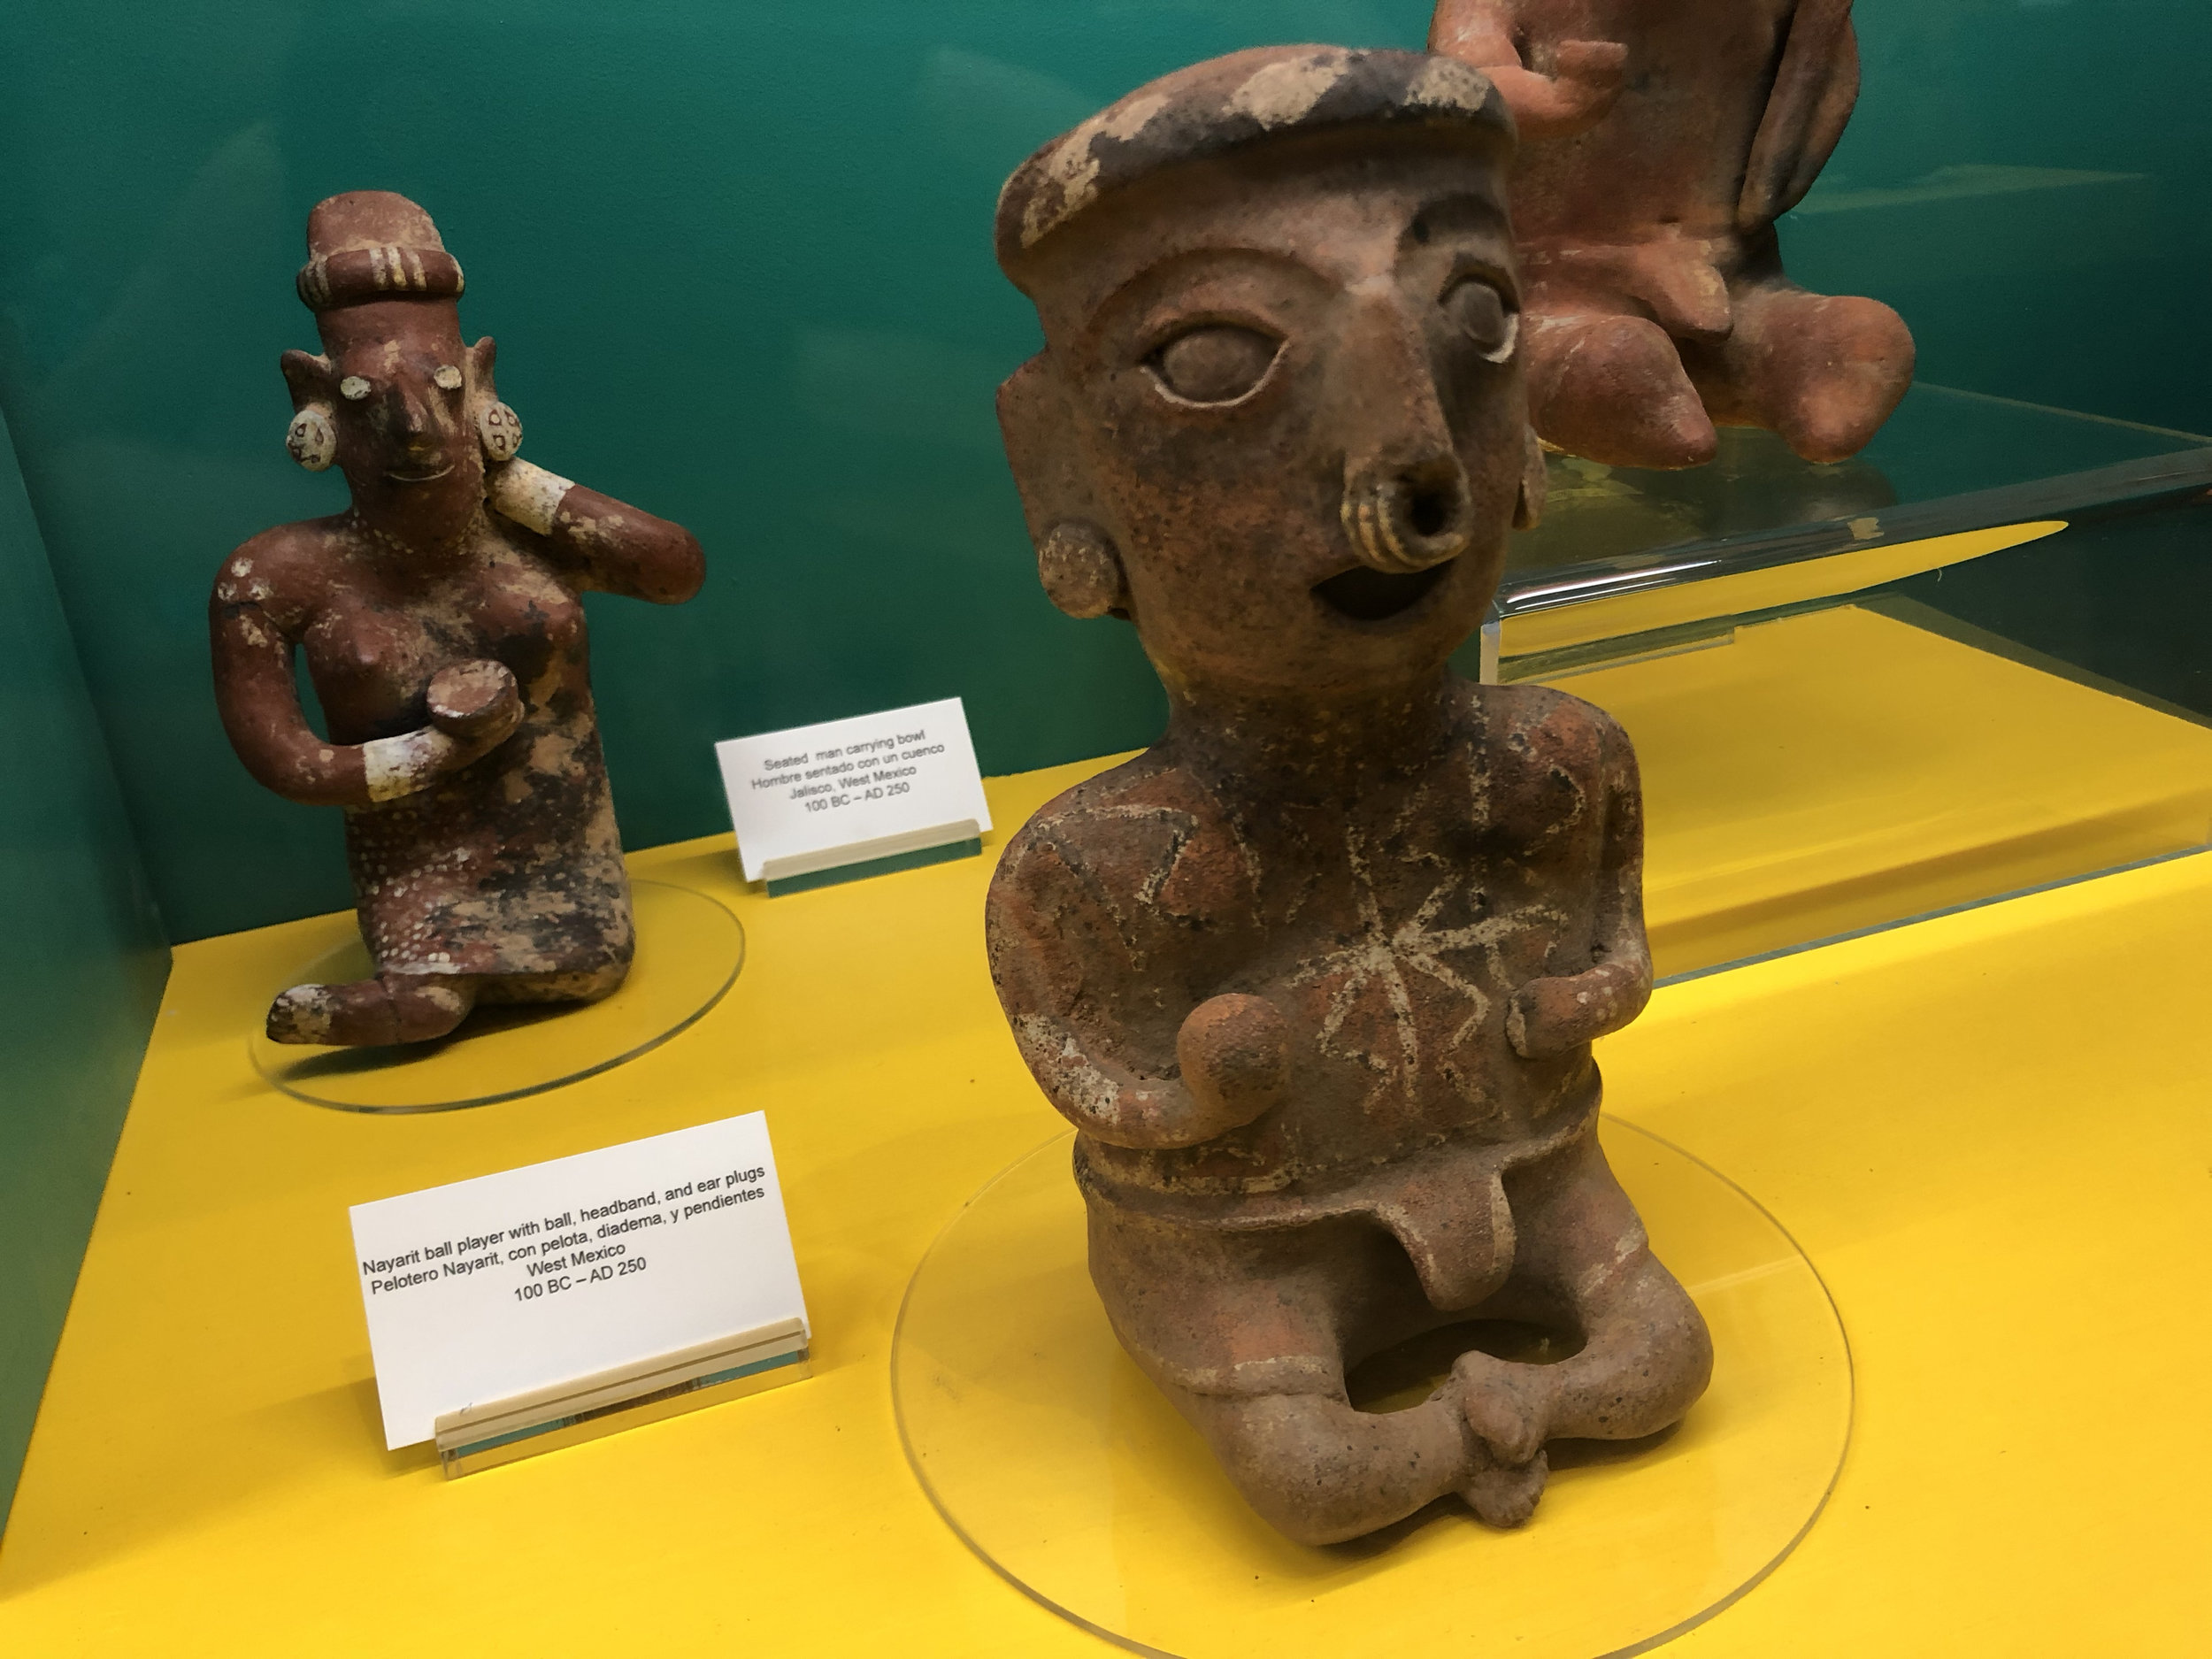 Artifact in museum from West Mexico. Photos by Kiara Jerez.